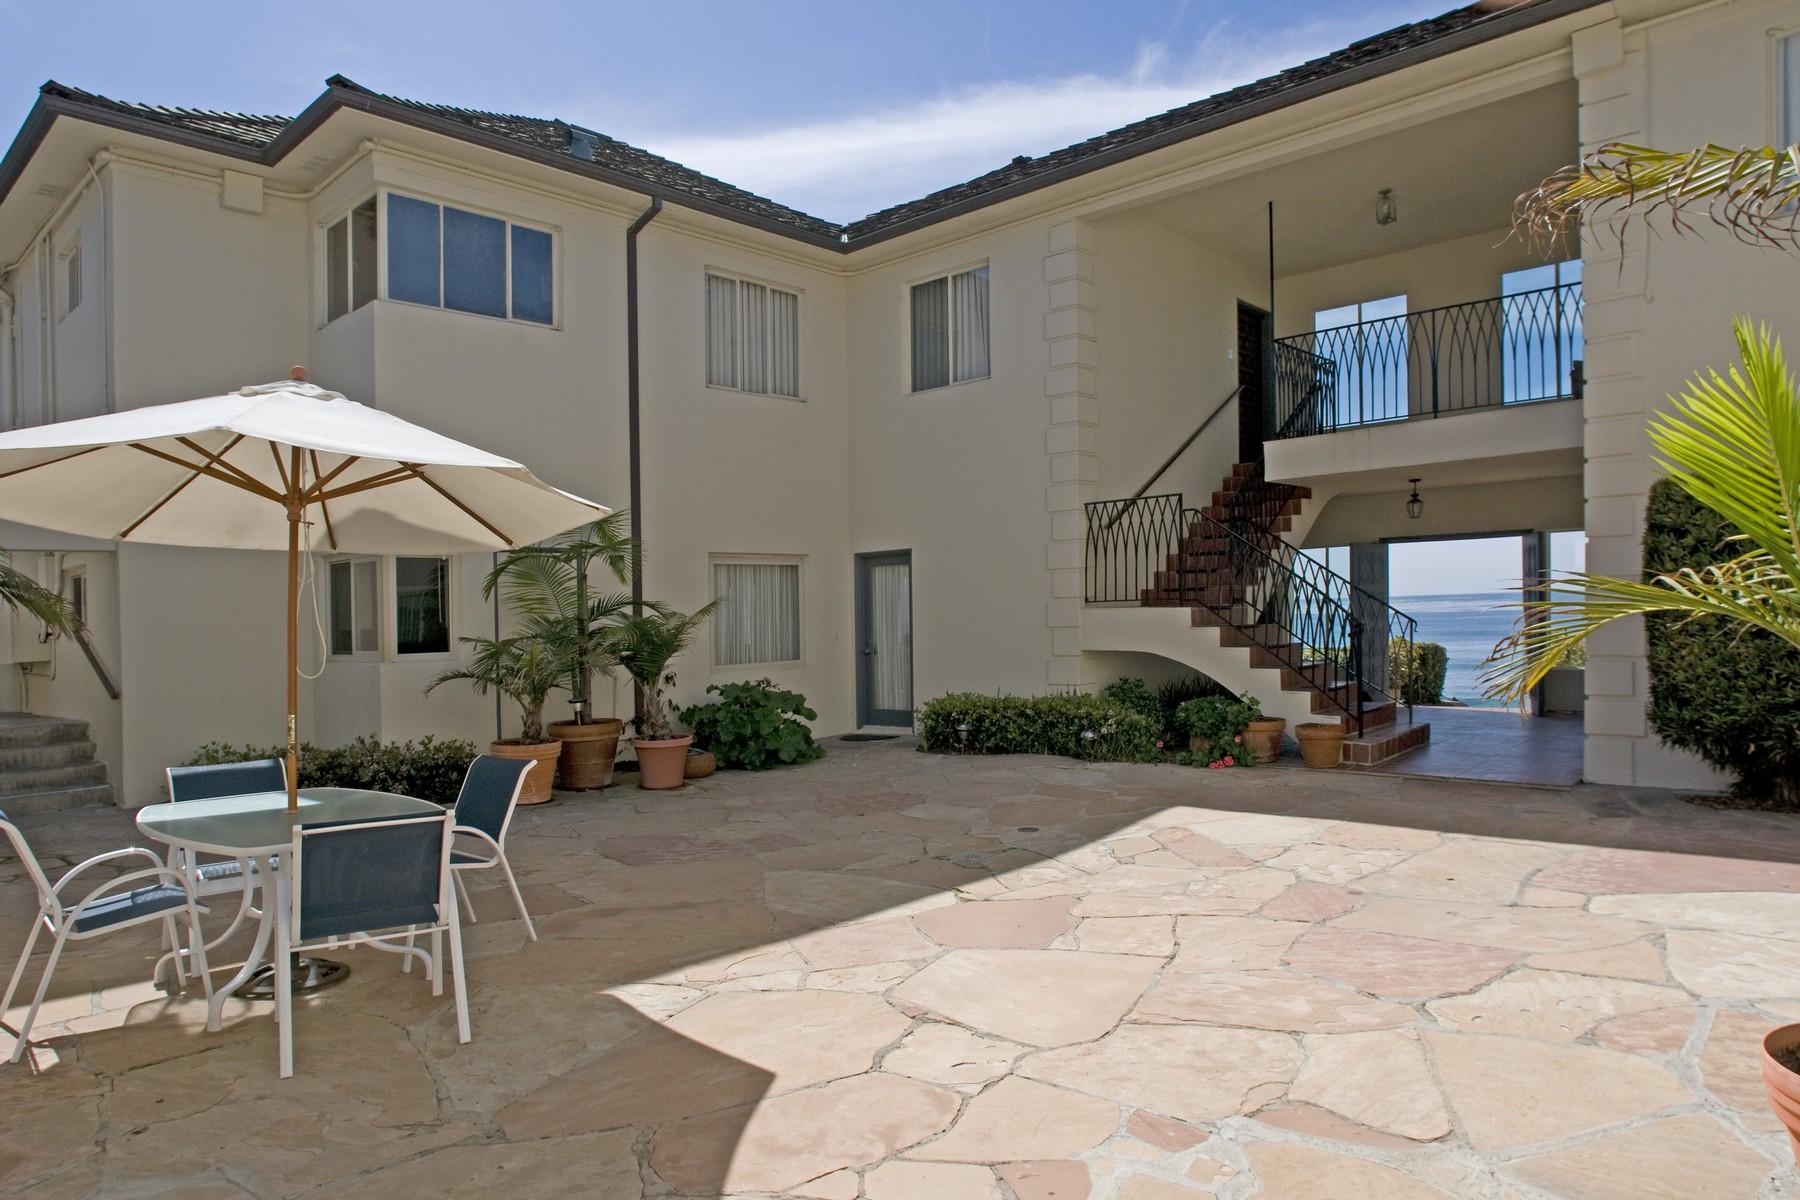 Townhouse for Sale at 203 Rosemont St La Jolla, California, 92037 United States